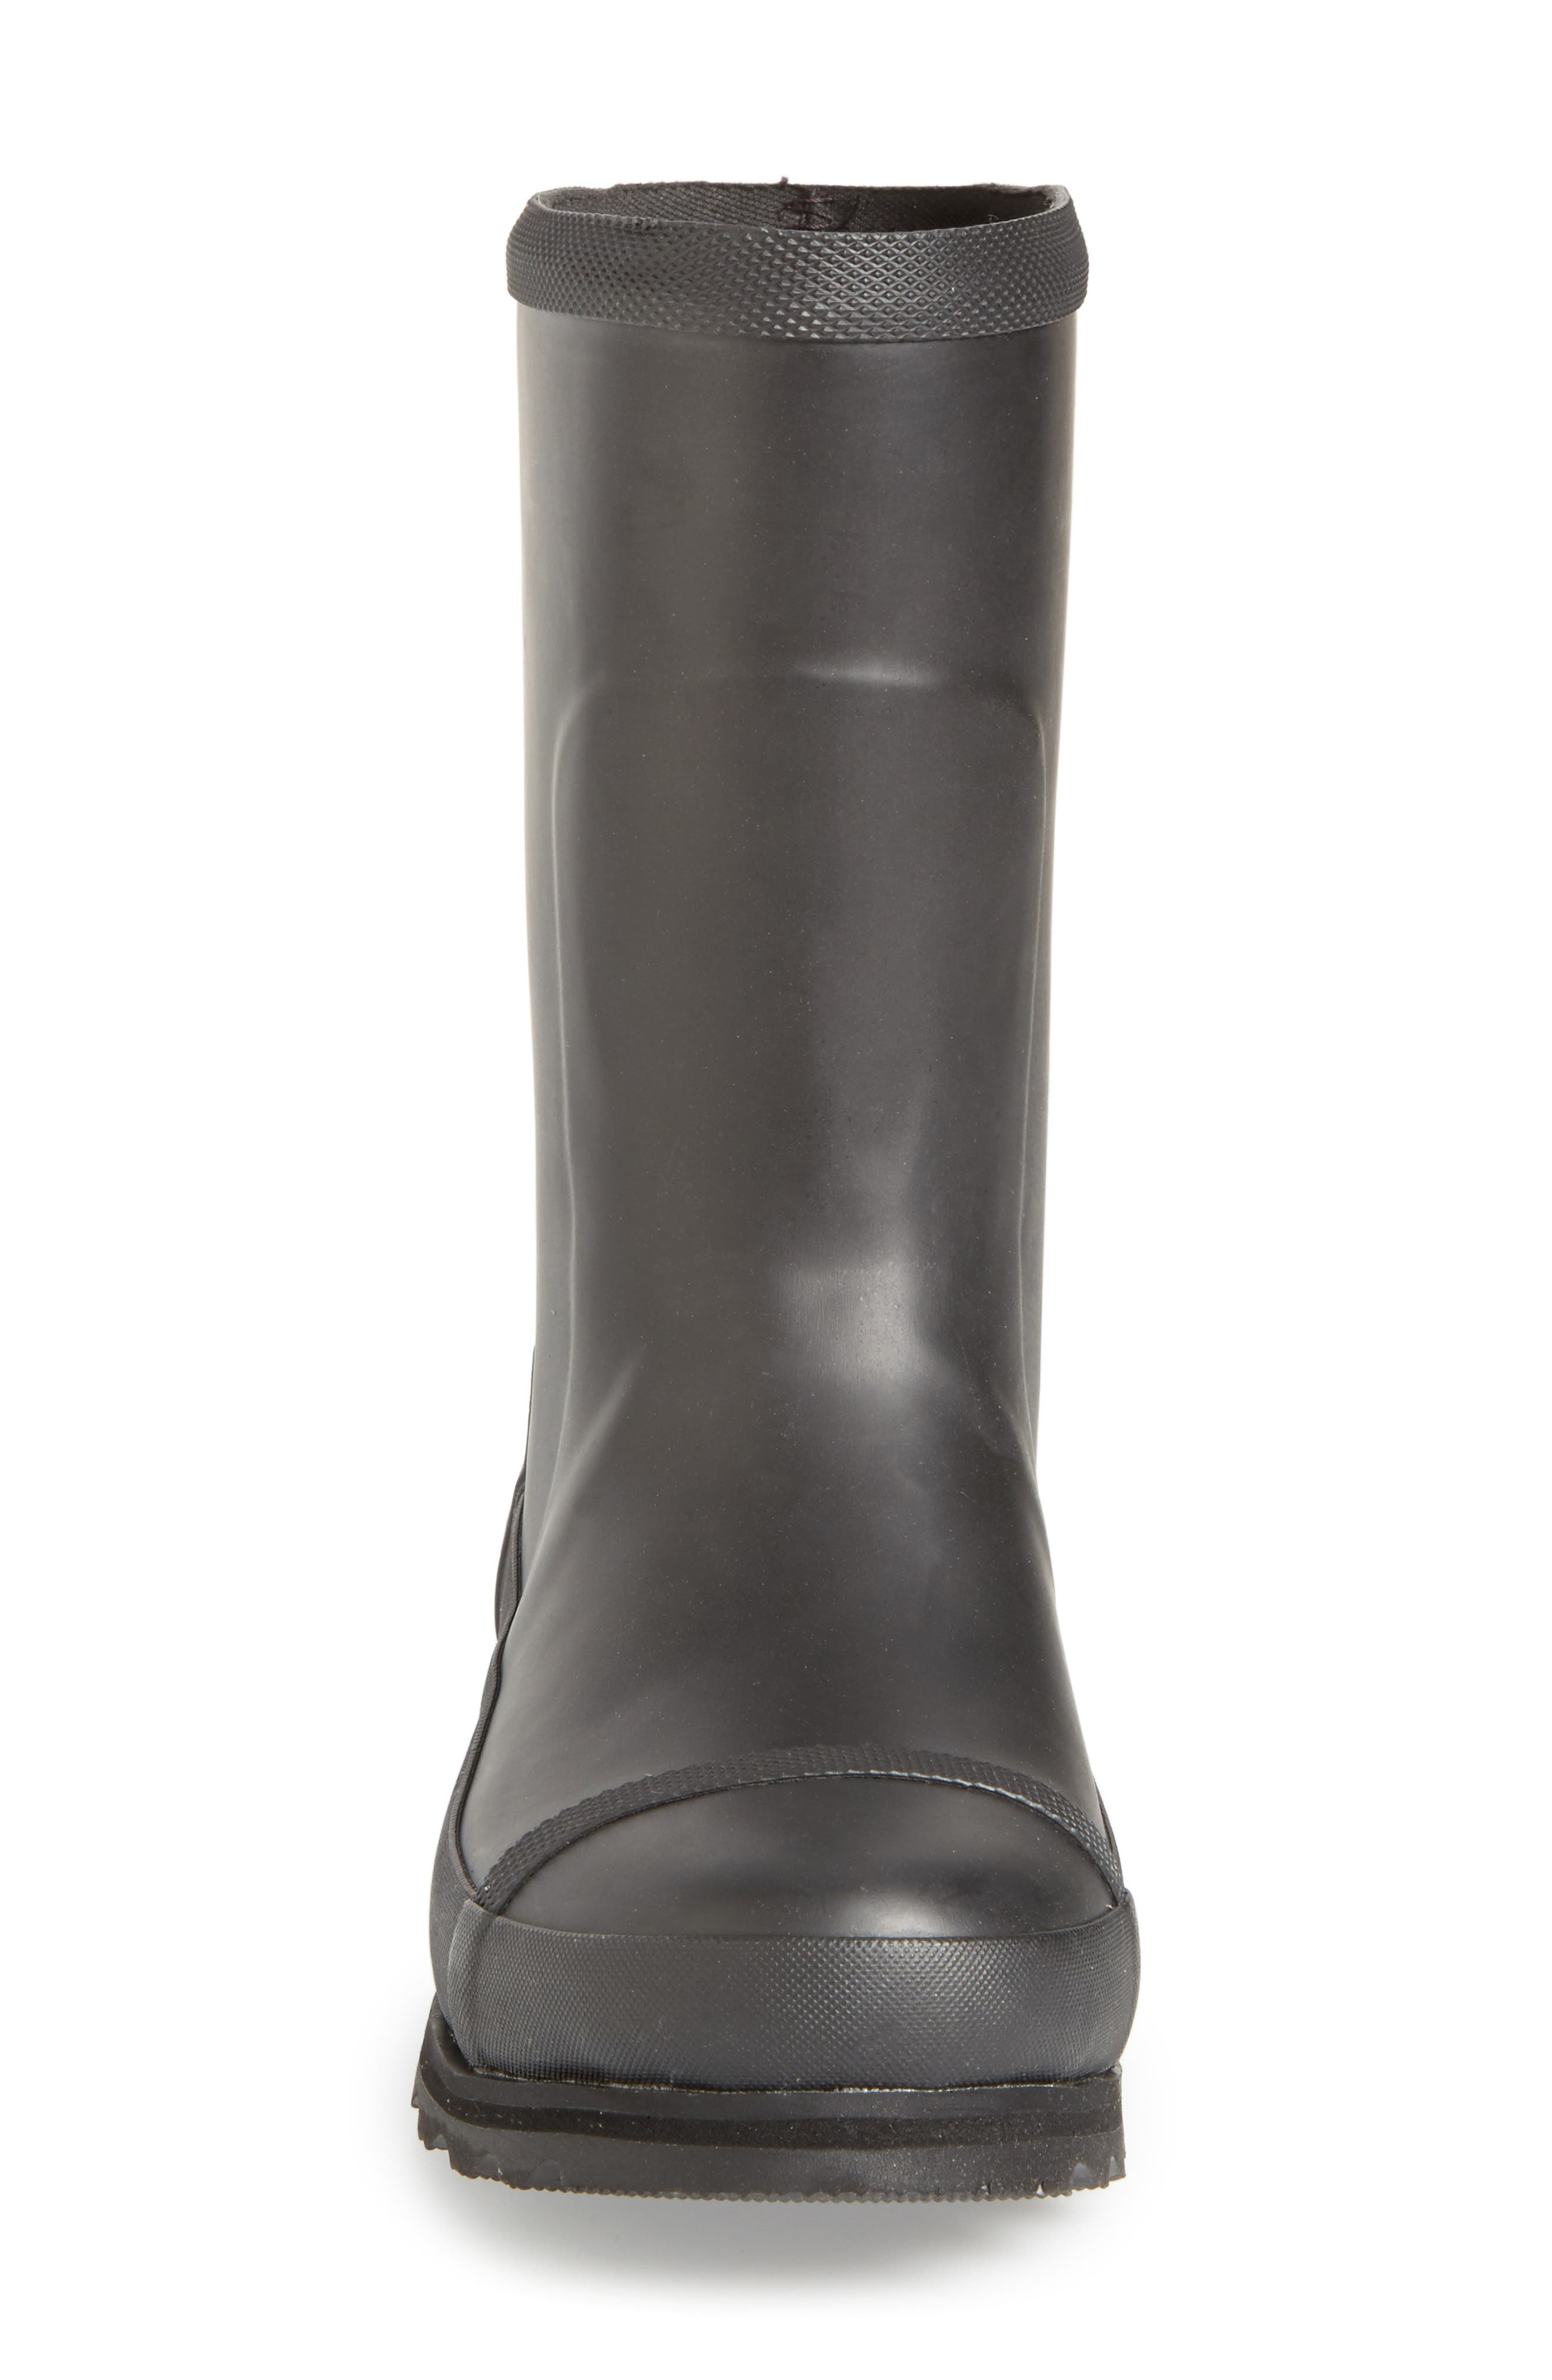 Joan Short Rain Boot,                             Alternate thumbnail 3, color,                             Black/ Sea Salt